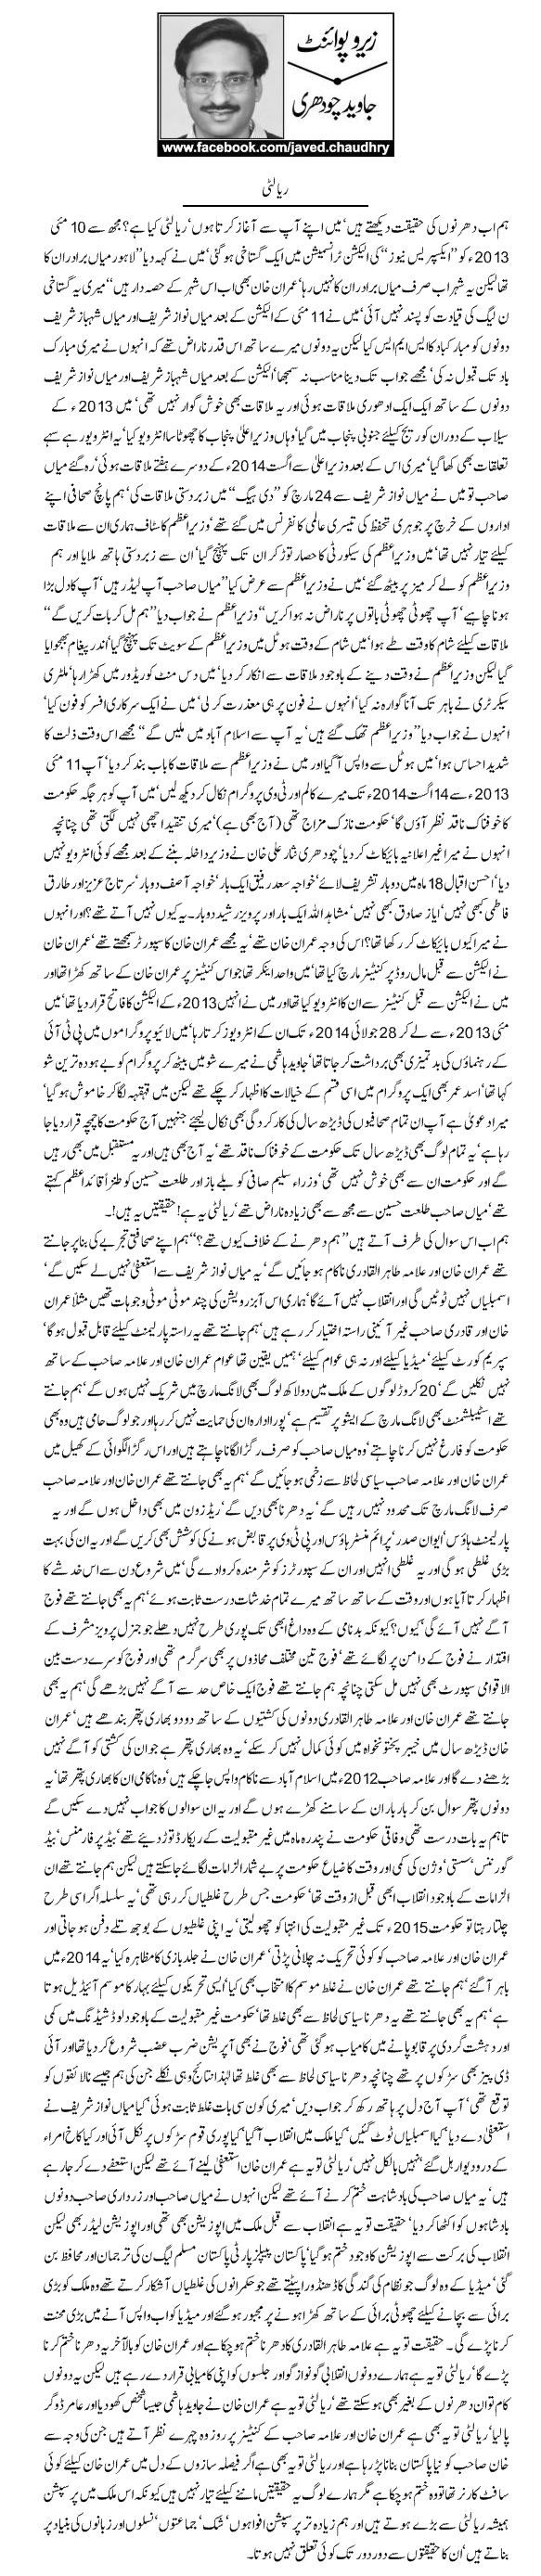 Reality by Javed Chaudhry 24-10-14